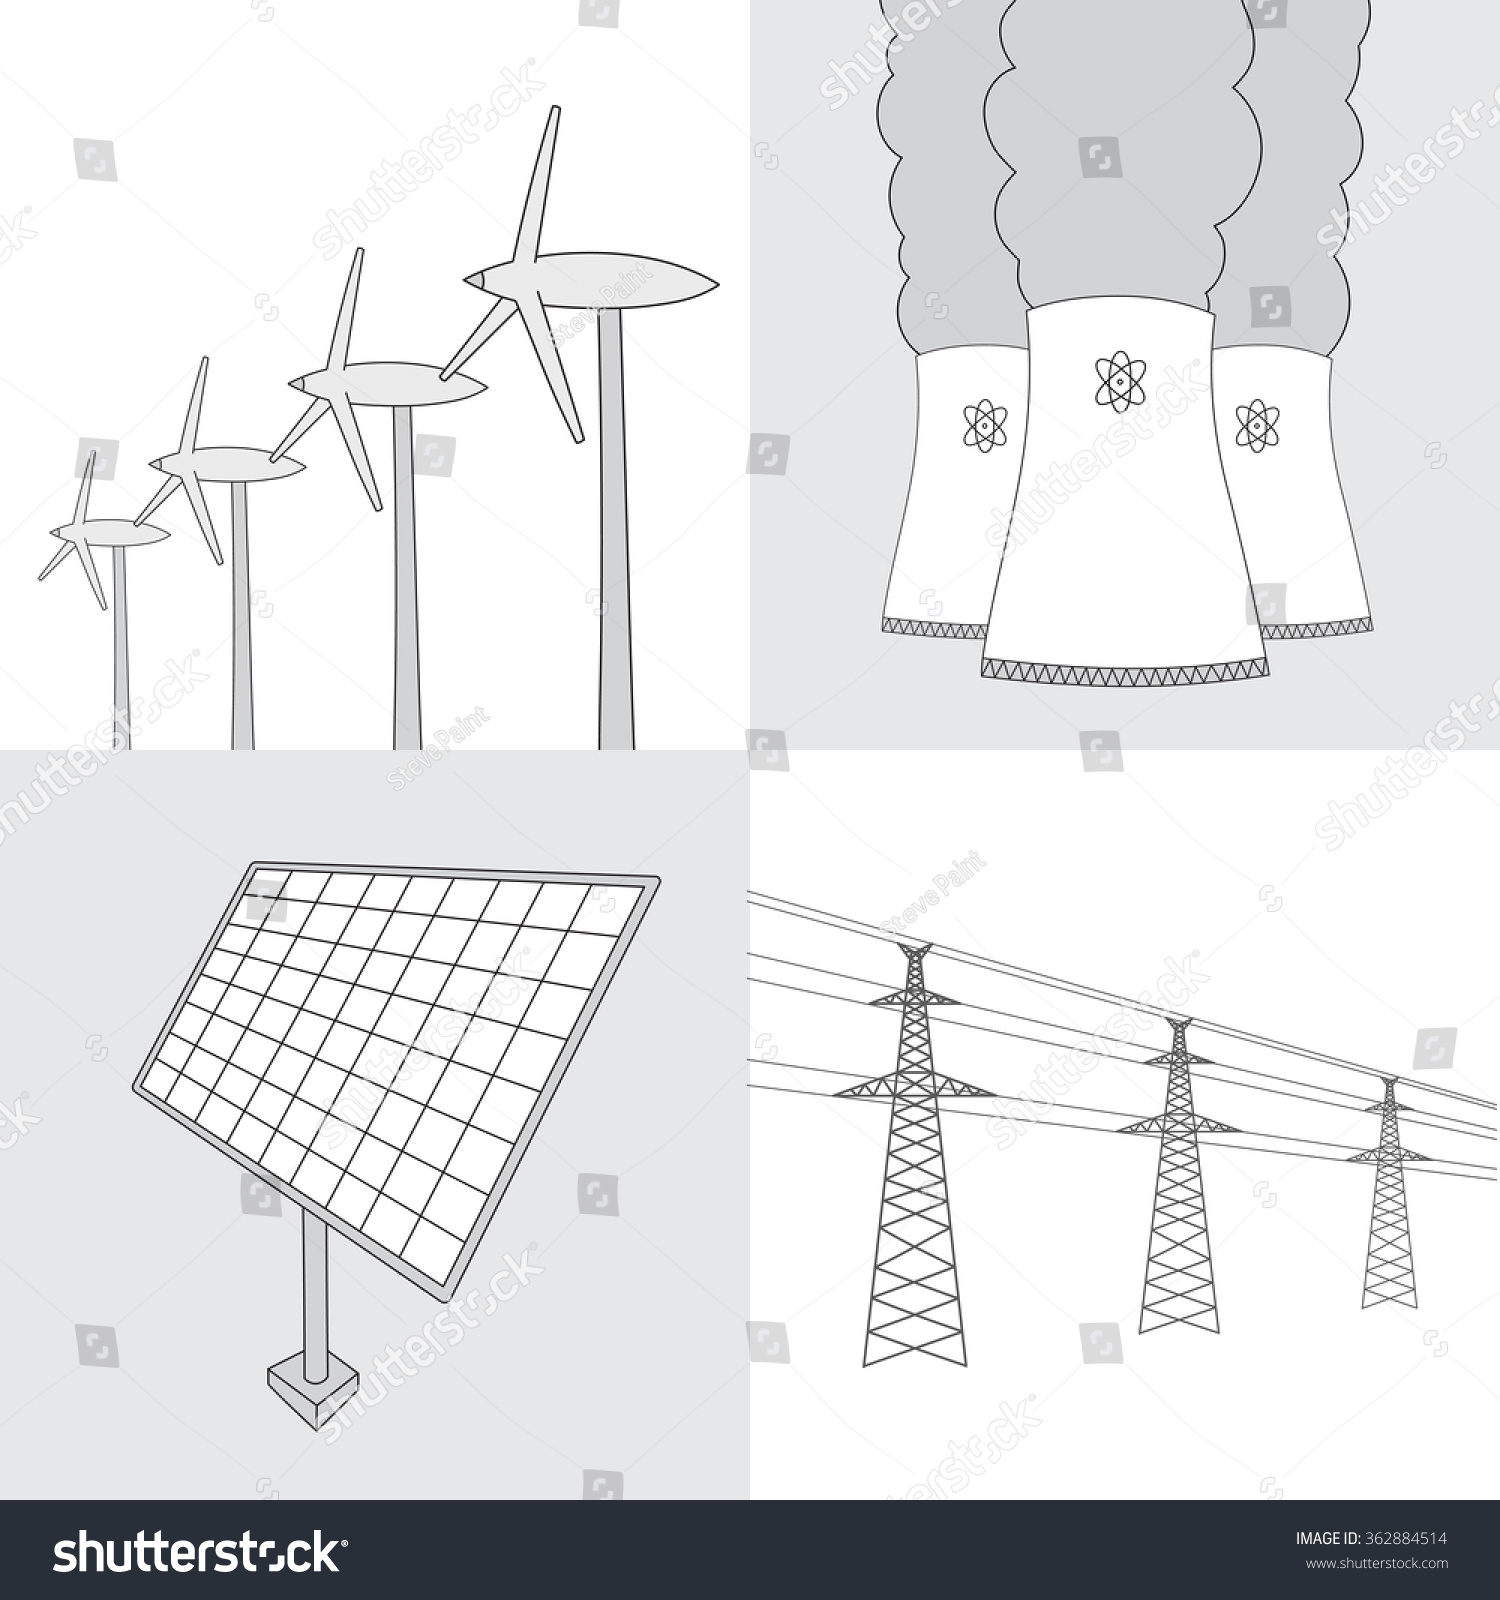 Vector Hand Drawn Various Sources Energy Stock Royalty Free Nuclear Power Plant Line Diagram Of Collection Wind Turbines